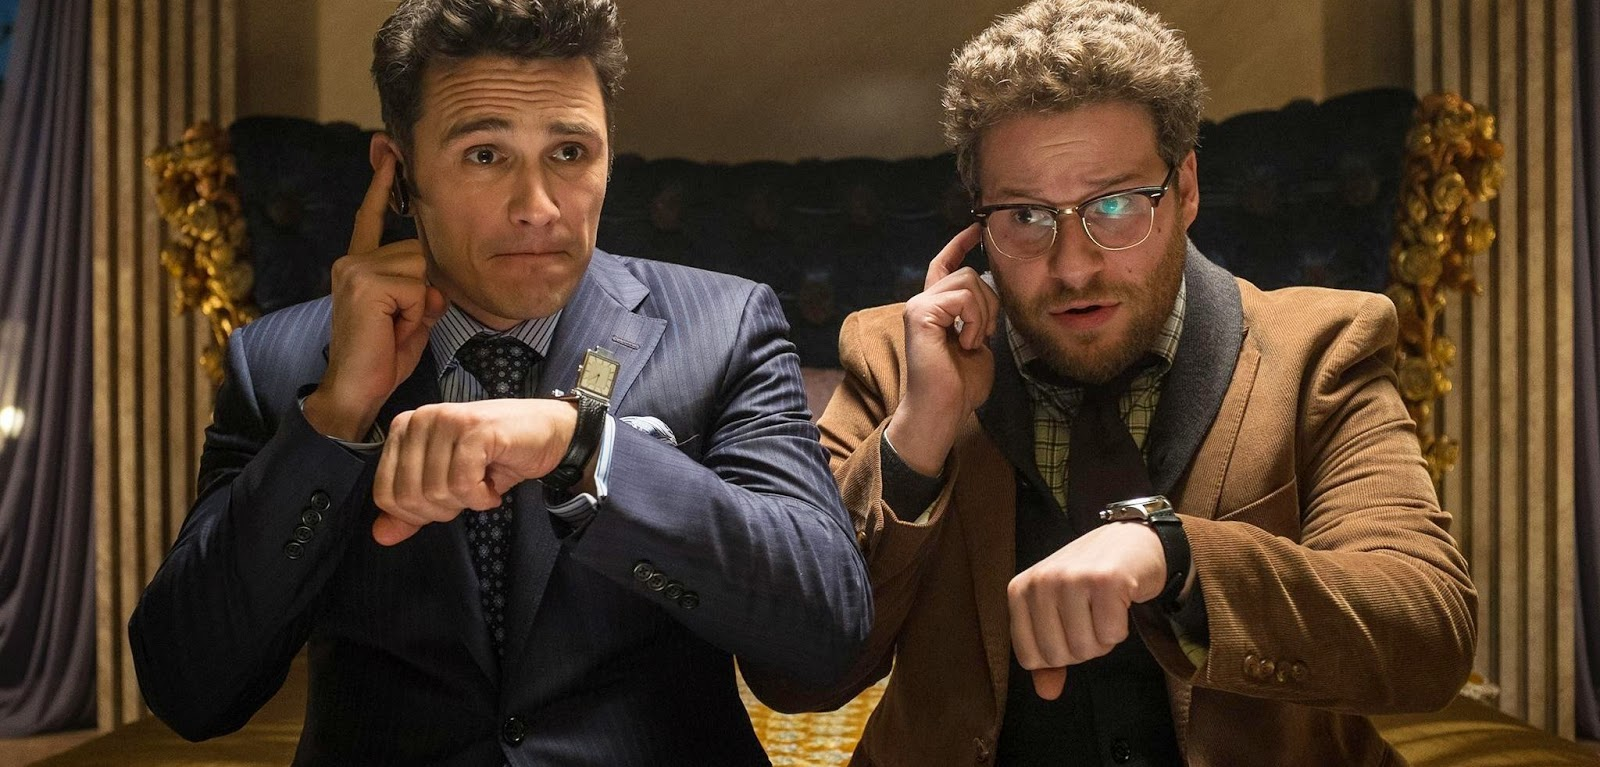 James Franco e Seth Rogen tentam matar Kim Jong-un no trailer The Interview